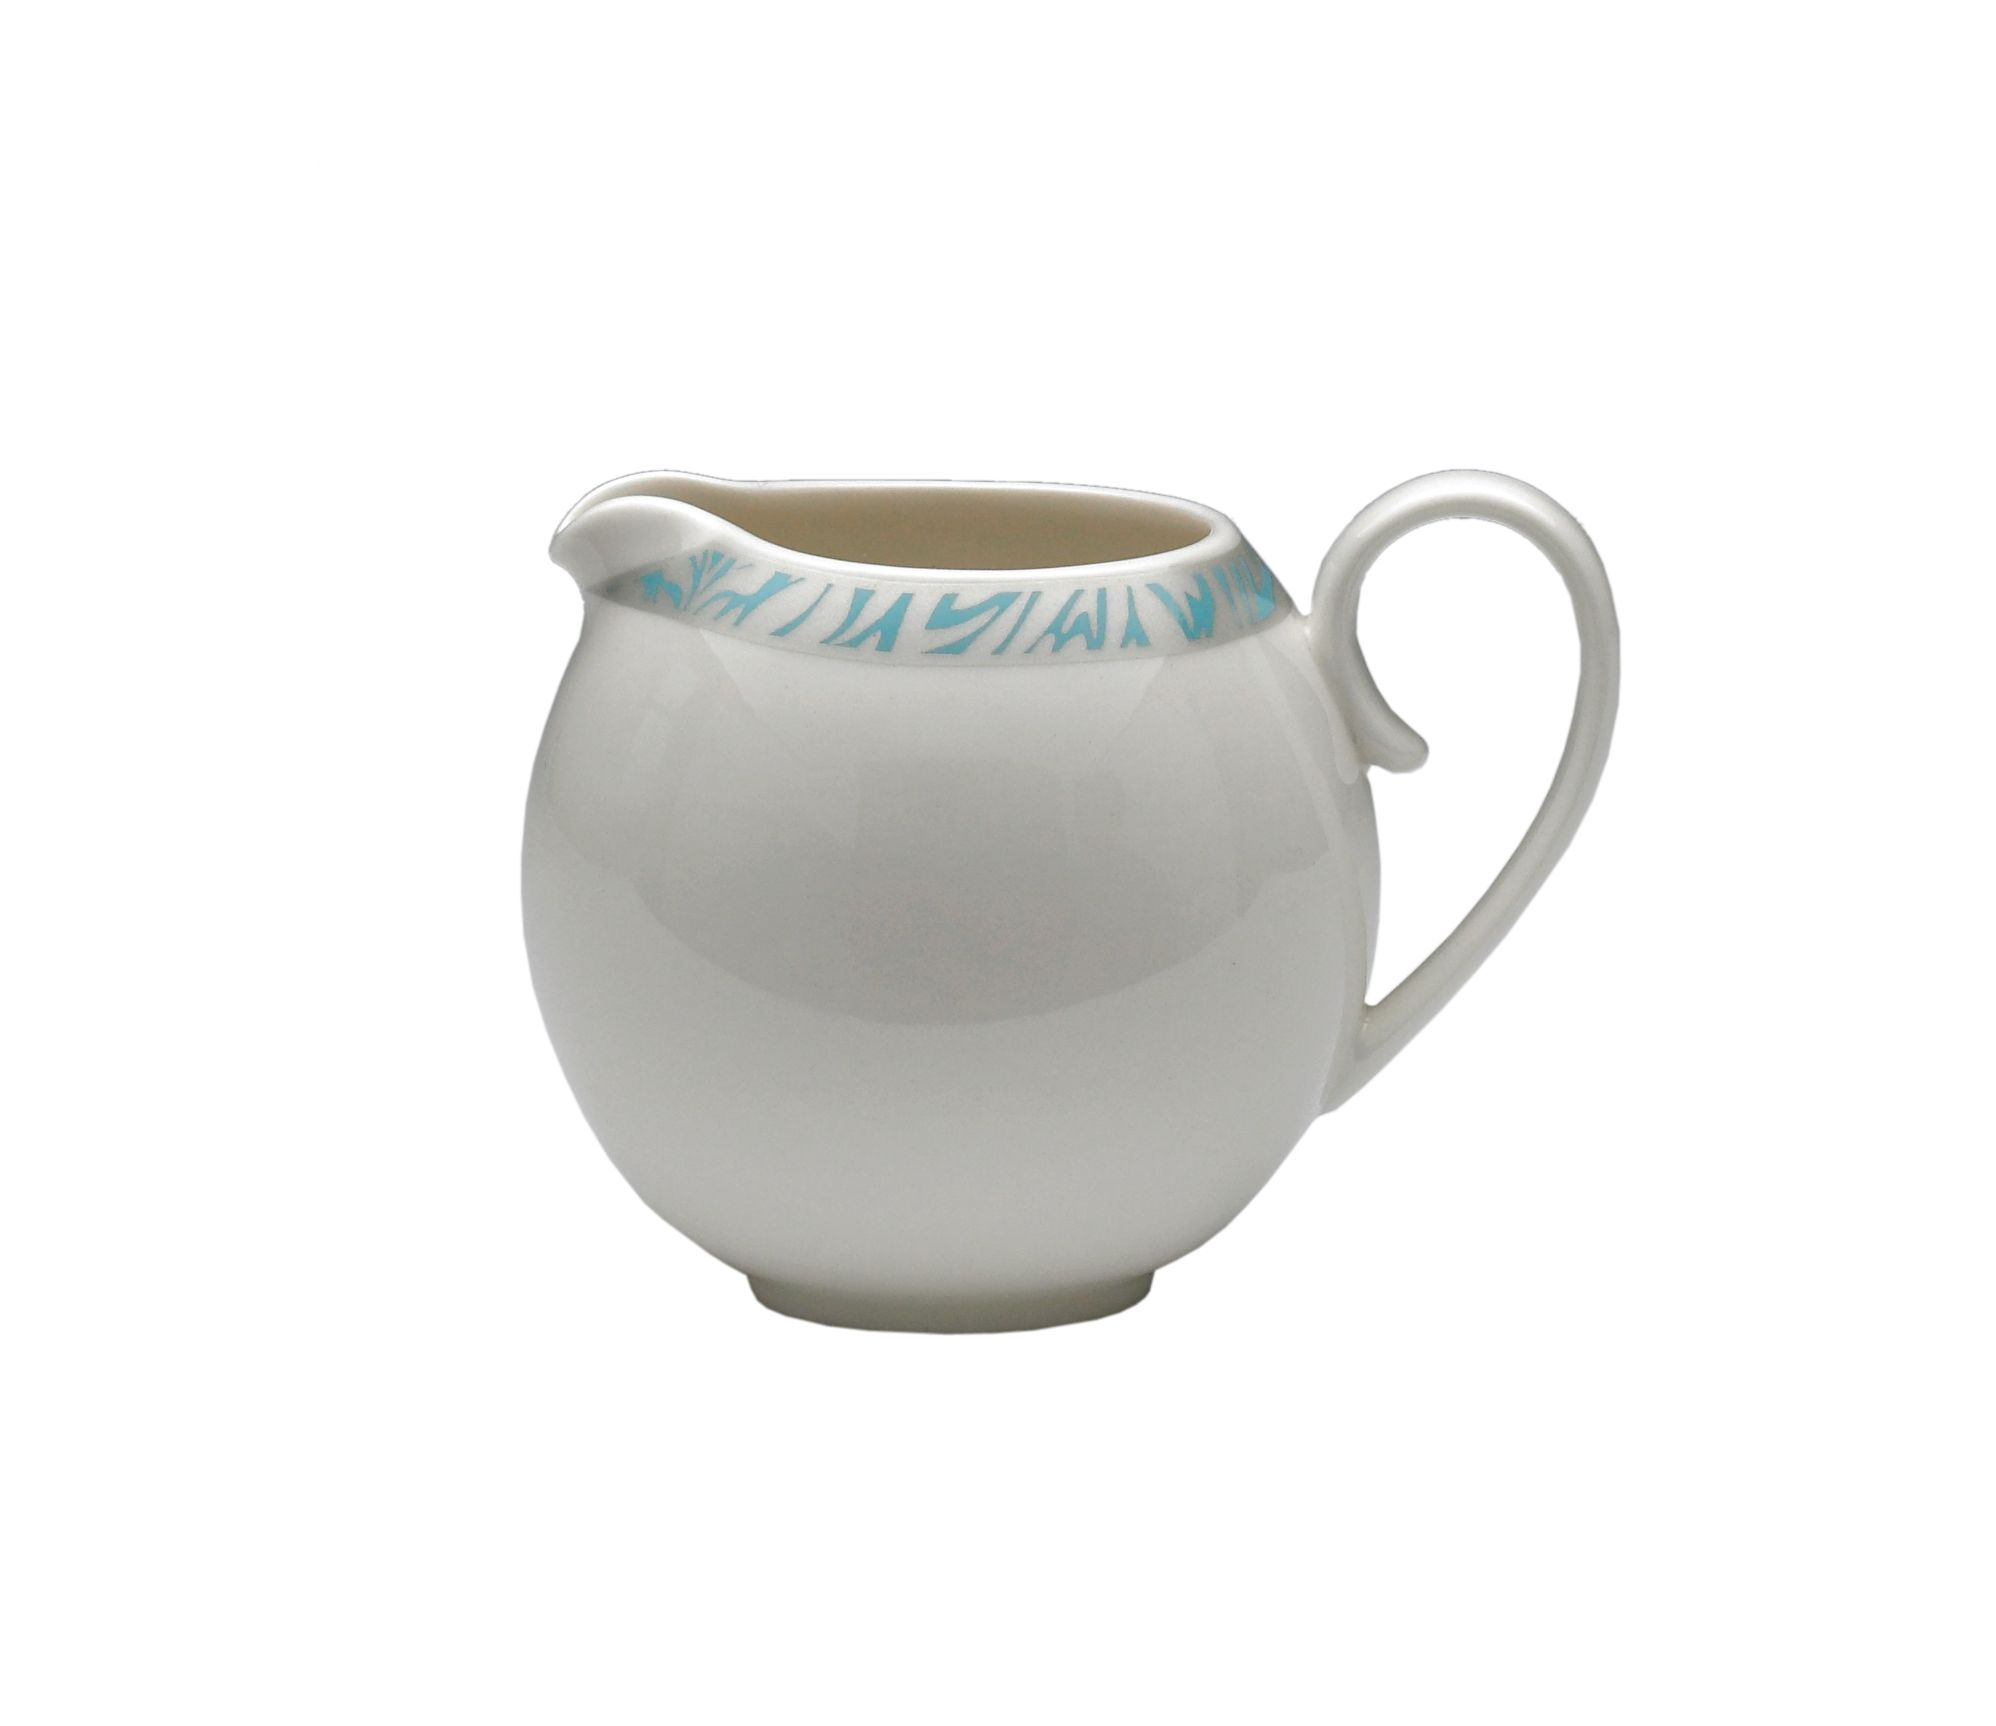 Monsoon Lucille teal small jug